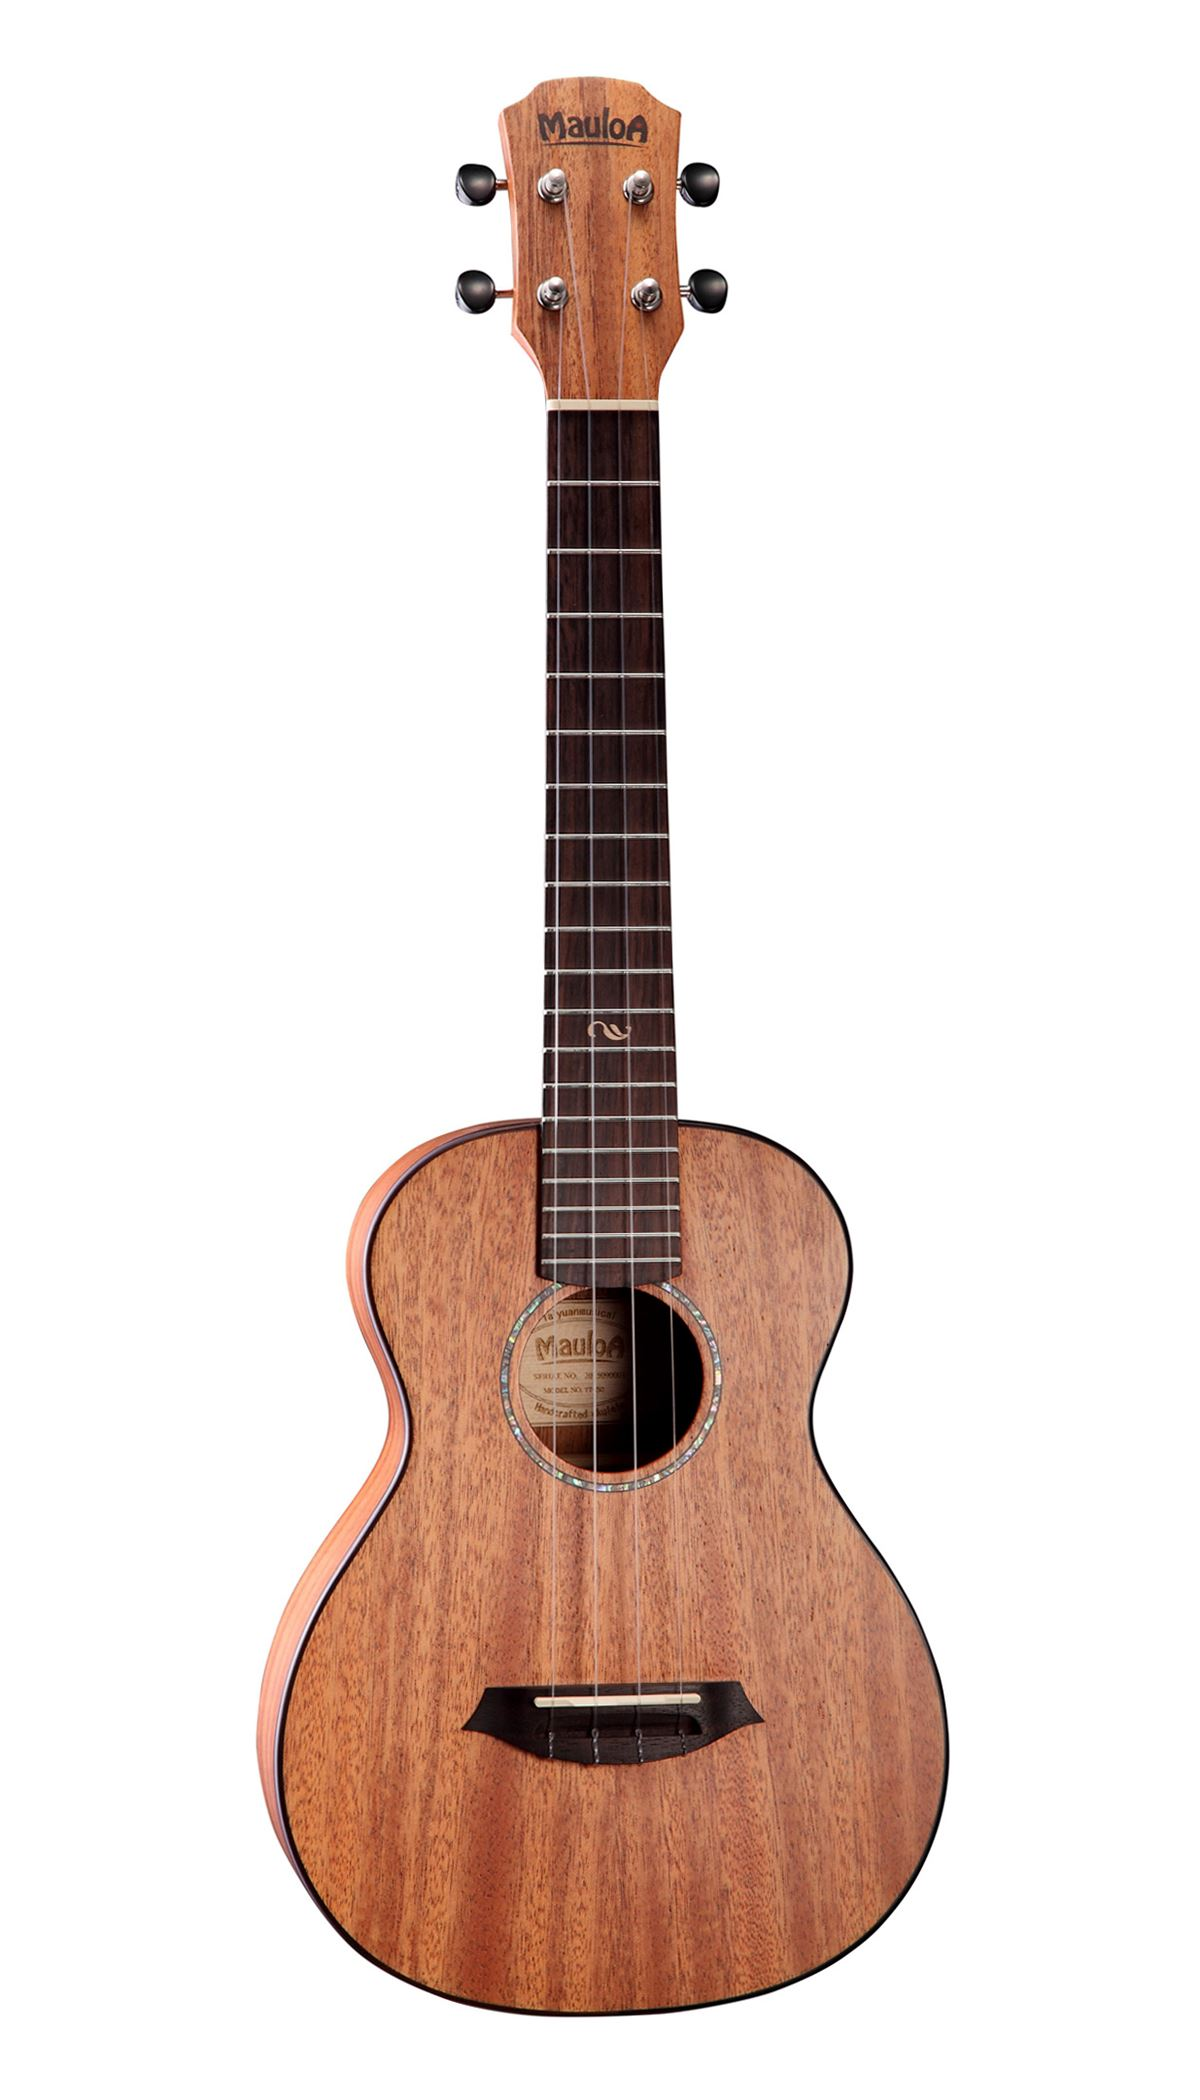 Top Solid Mahogany,Mahogany Plywood,Tenor Ukulele